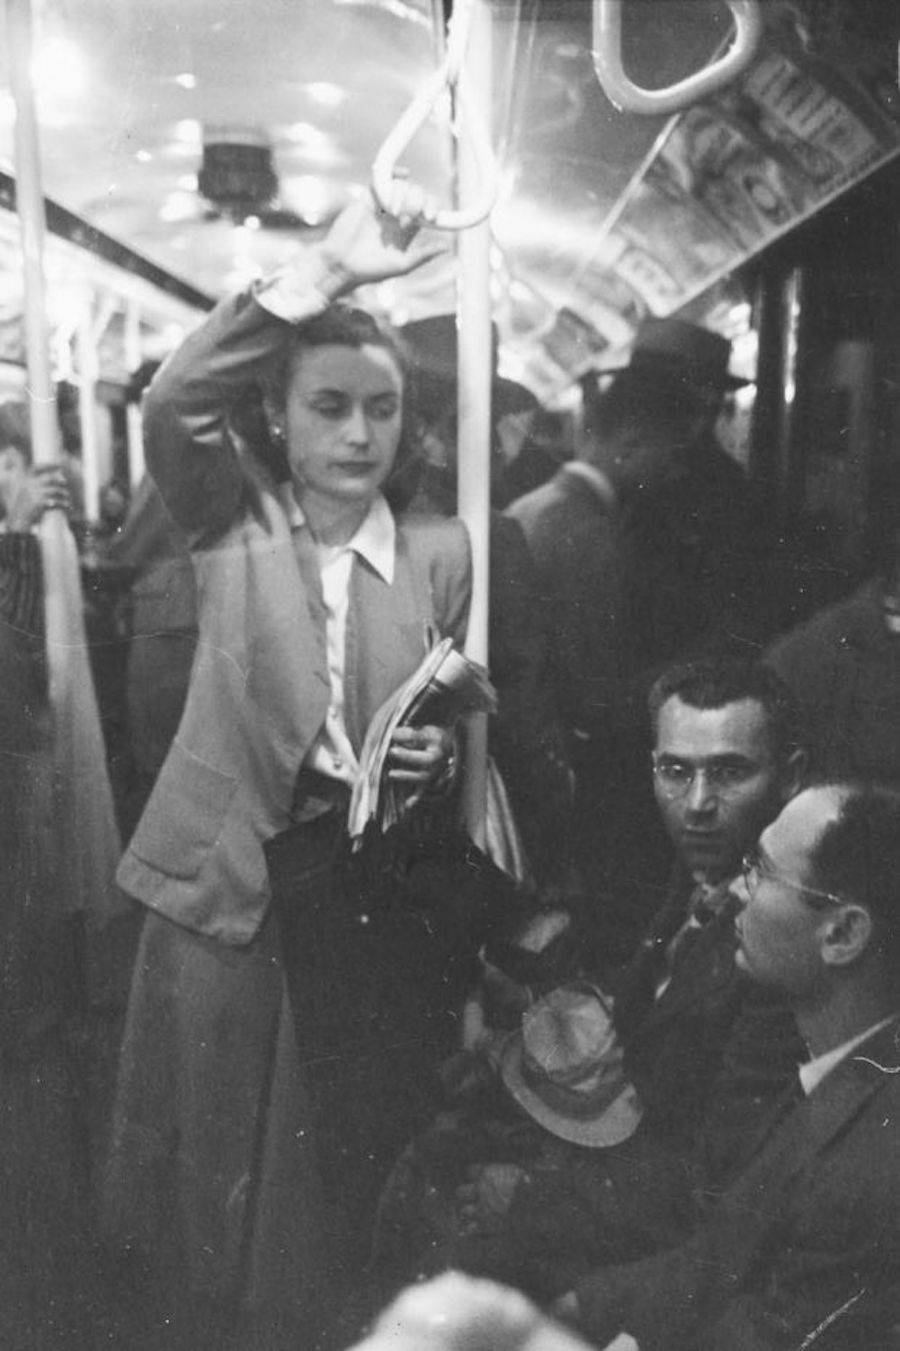 17-Year-Old Stanley Kubrick Shots New York Subway